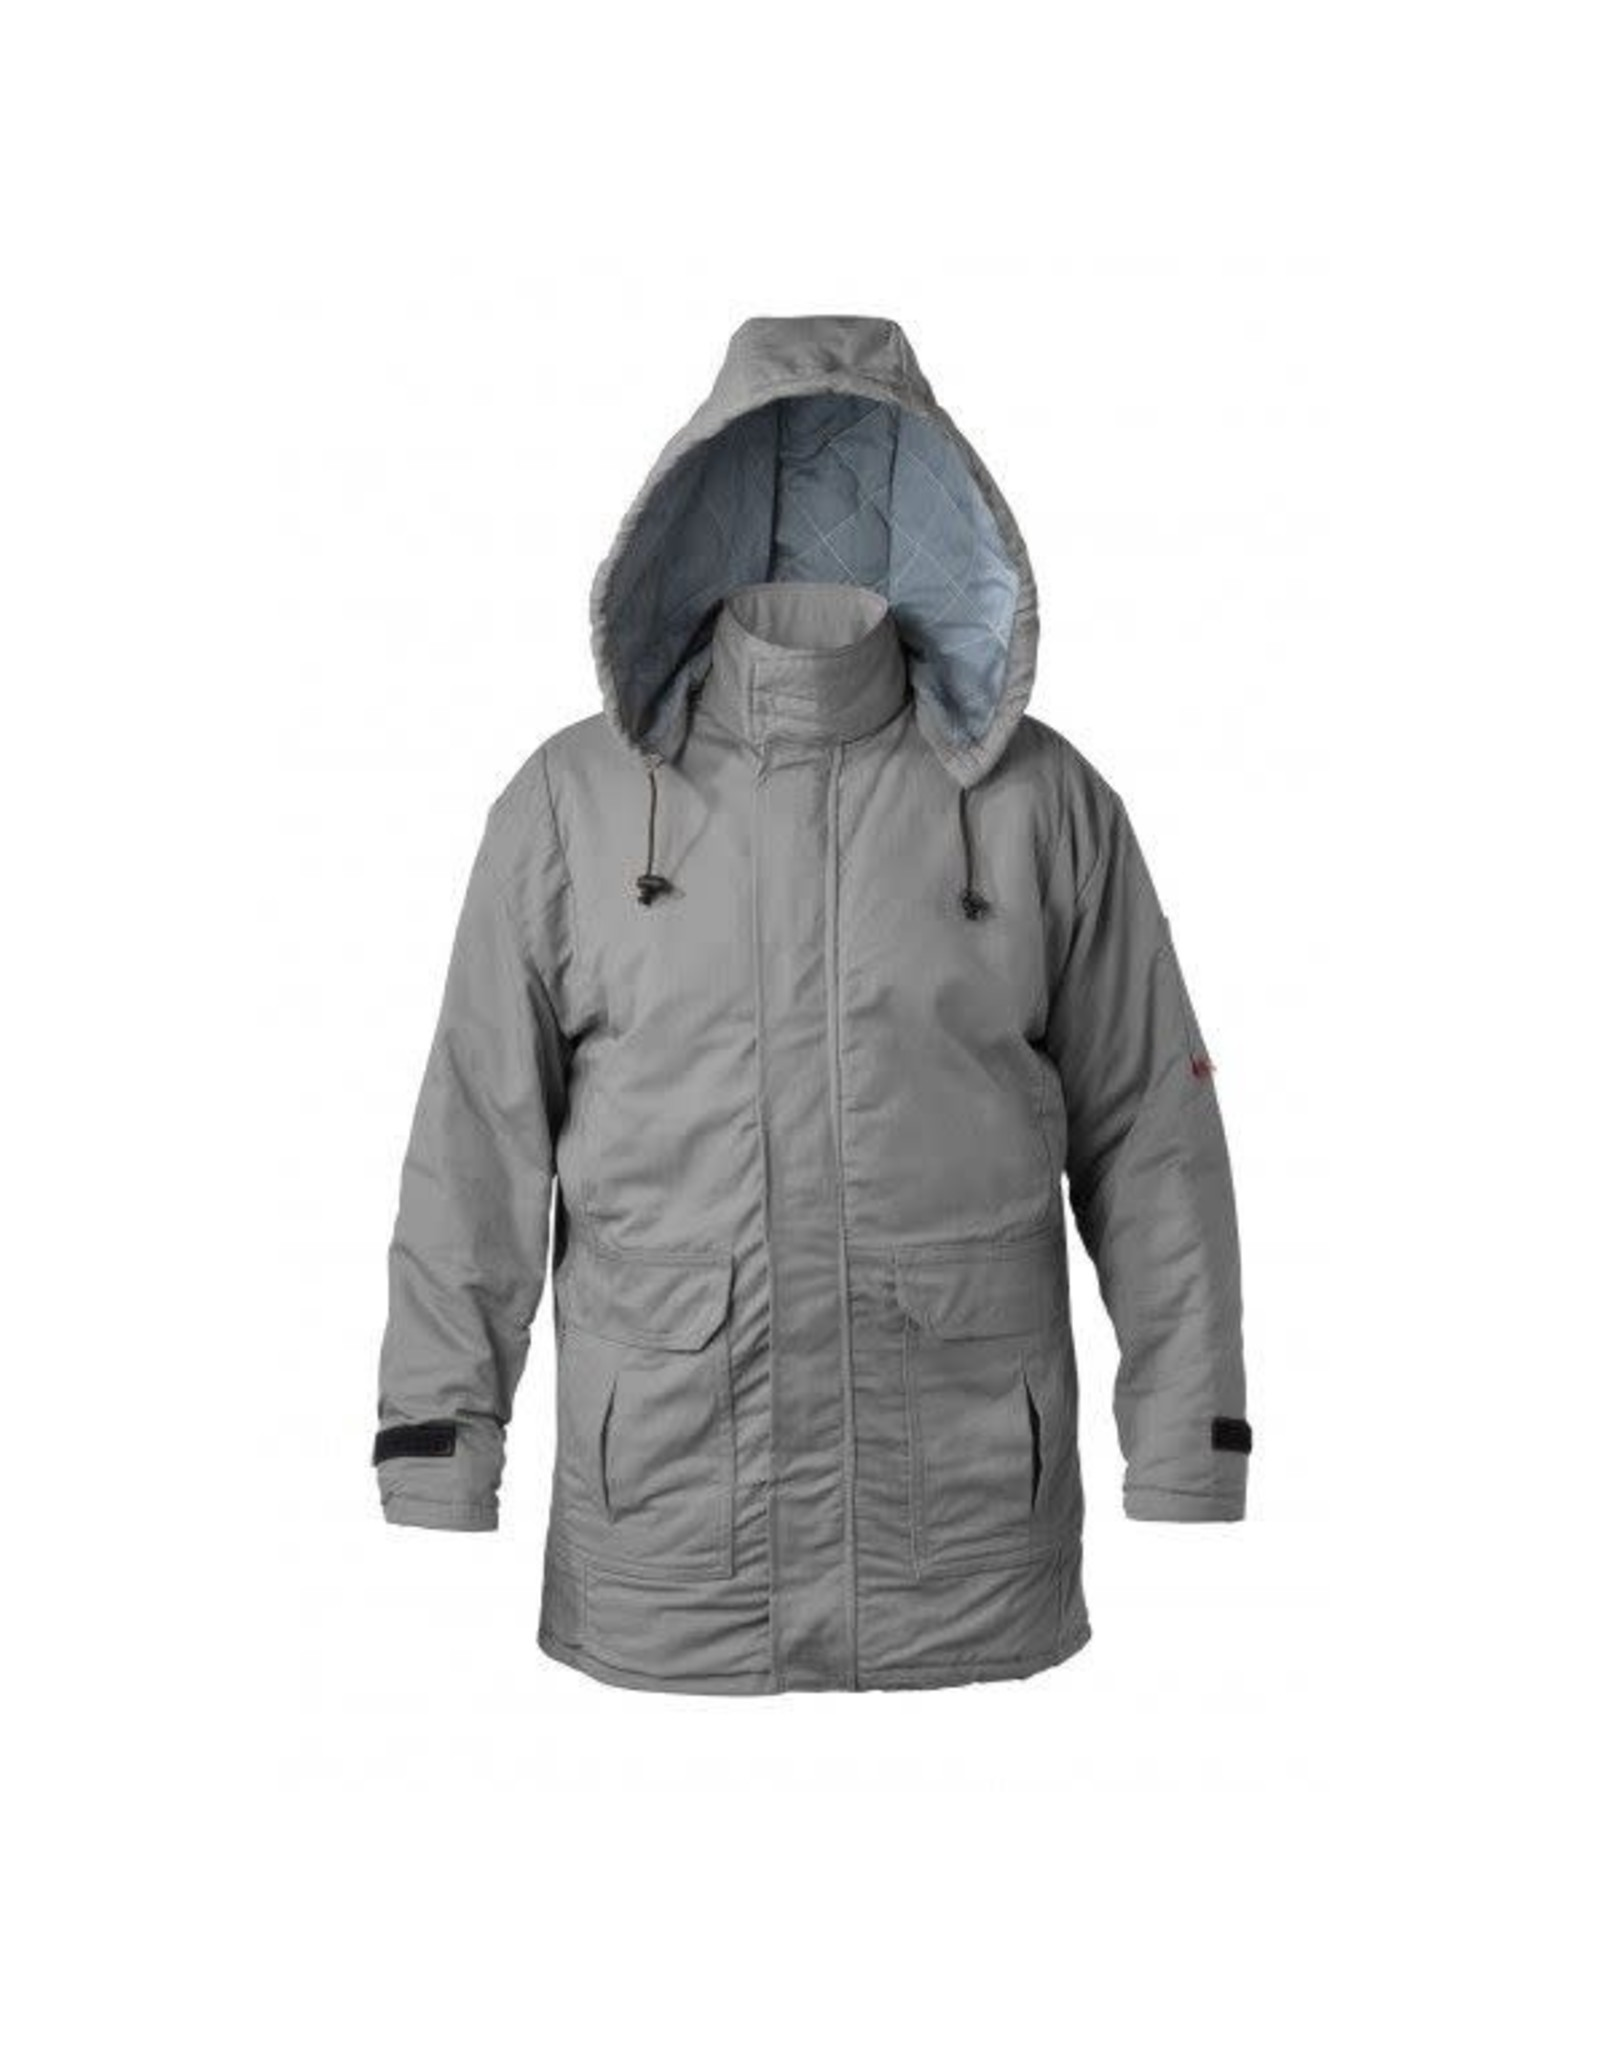 Saf-Tech 9 oz Indura Insulated Parka W/ 10 Oz Zip In/Zip Out Moda Quilt Liner and Detachable Hood - High-Vis